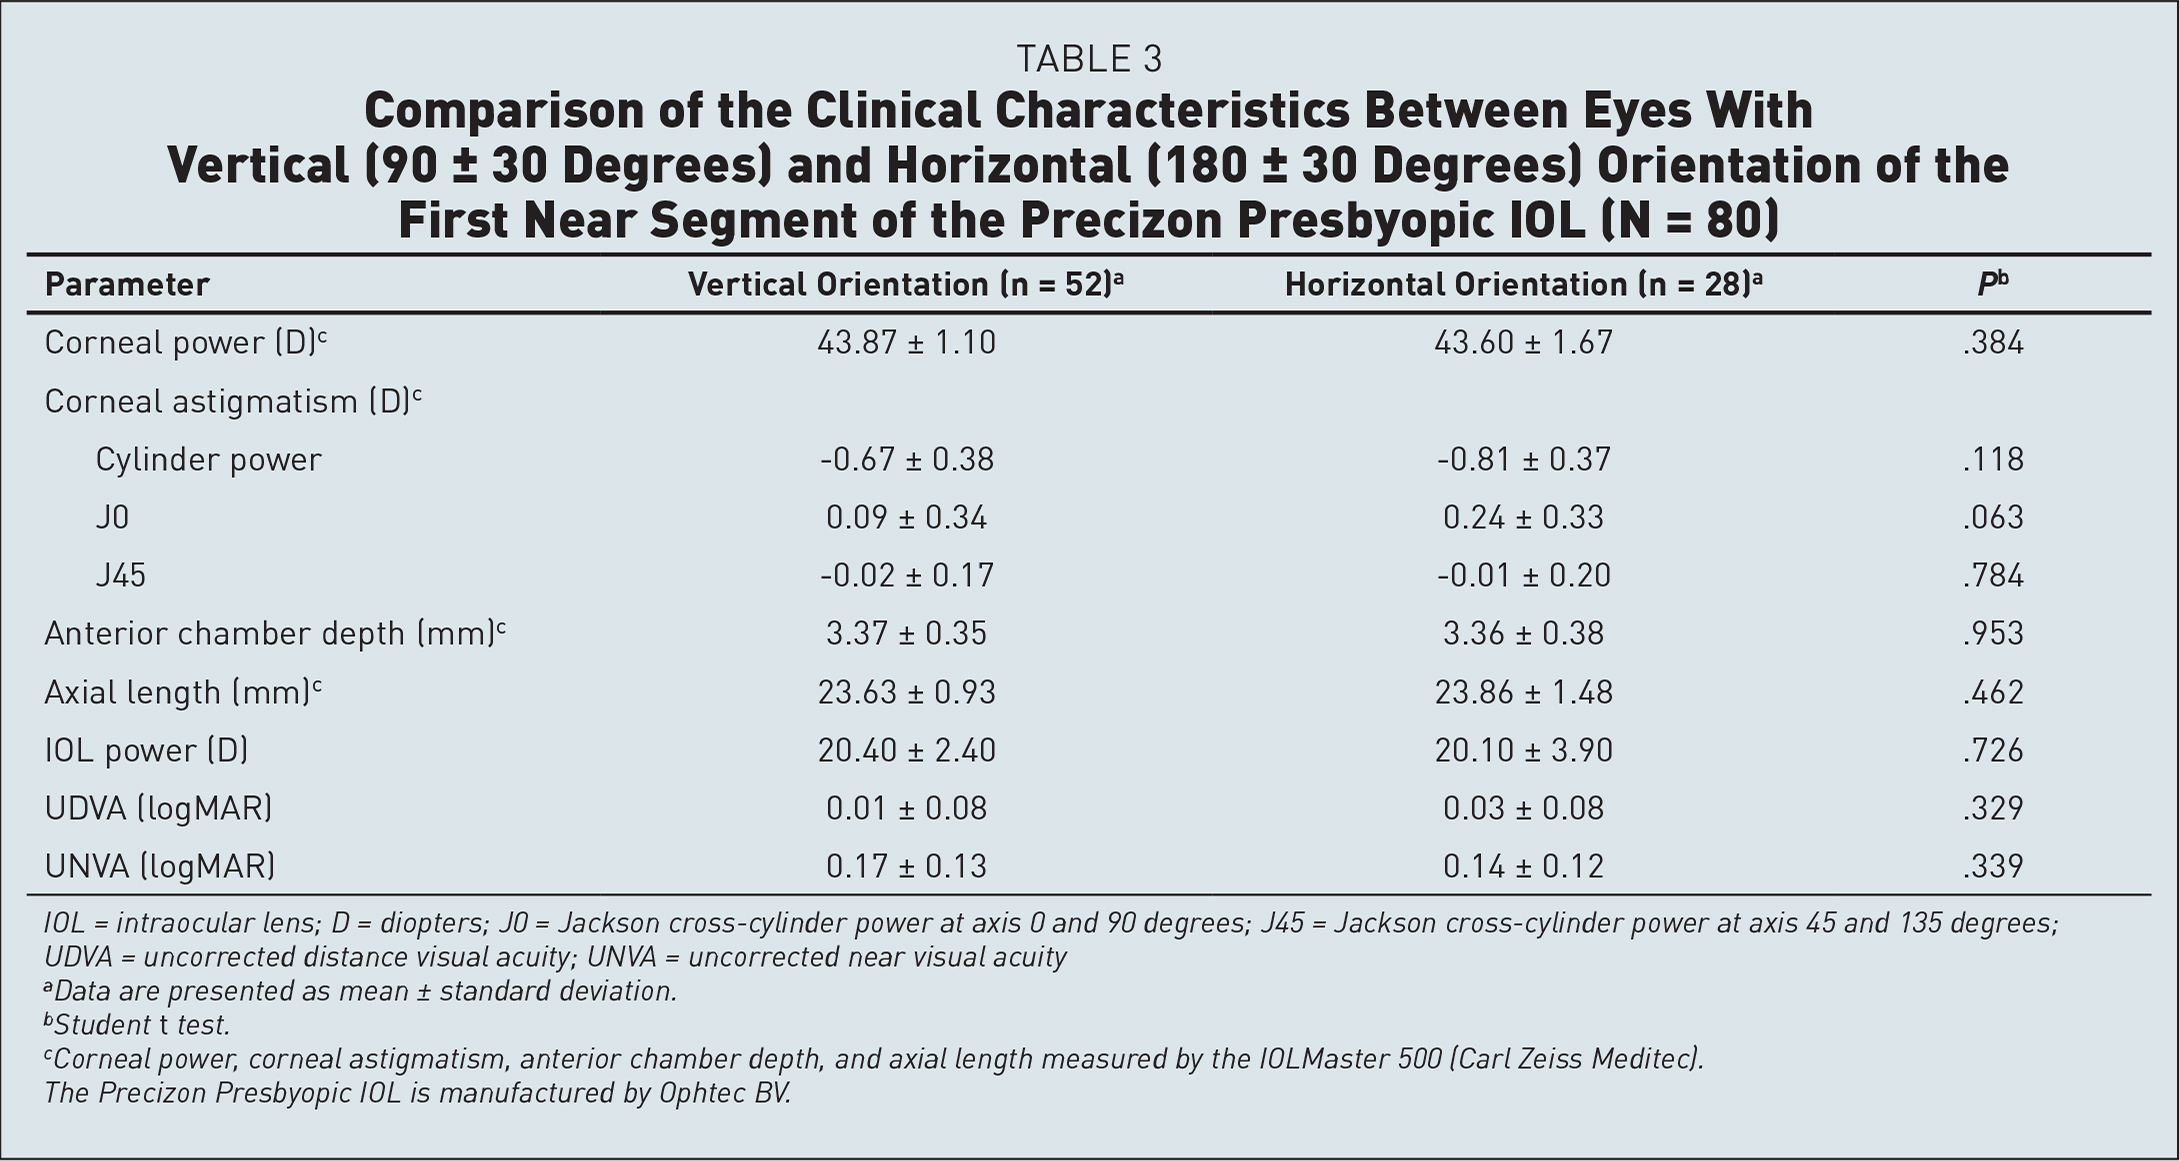 Comparison of the Clinical Characteristics Between Eyes With Vertical (90 ± 30 Degrees) and Horizontal (180 ± 30 Degrees) Orientation of the First Near Segment of the Precizon Presbyopic IOL (N = 80)